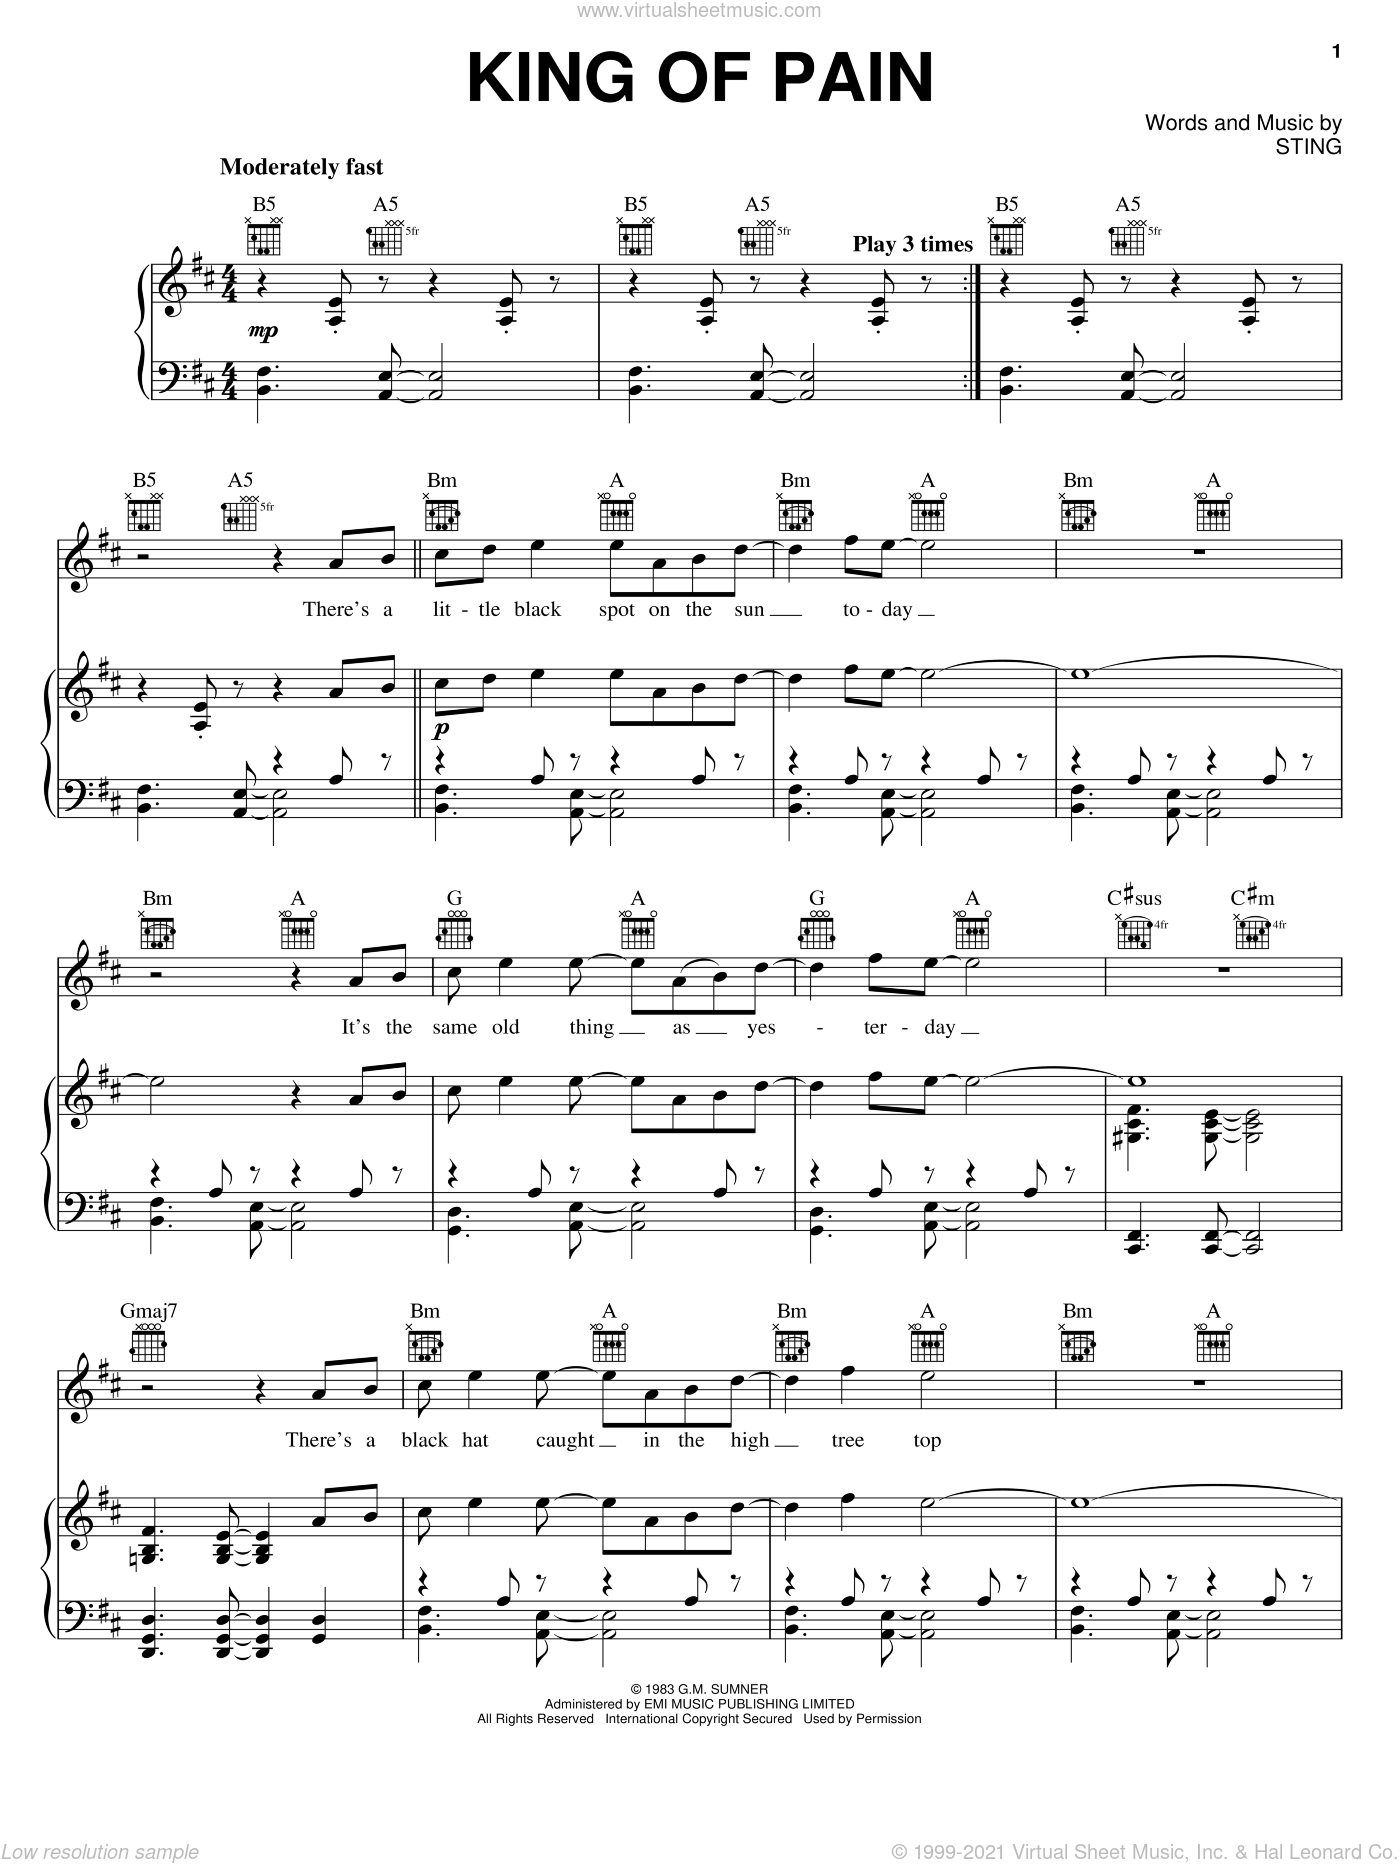 King Of Pain sheet music for voice, piano or guitar by The Police and Sting. Score Image Preview.